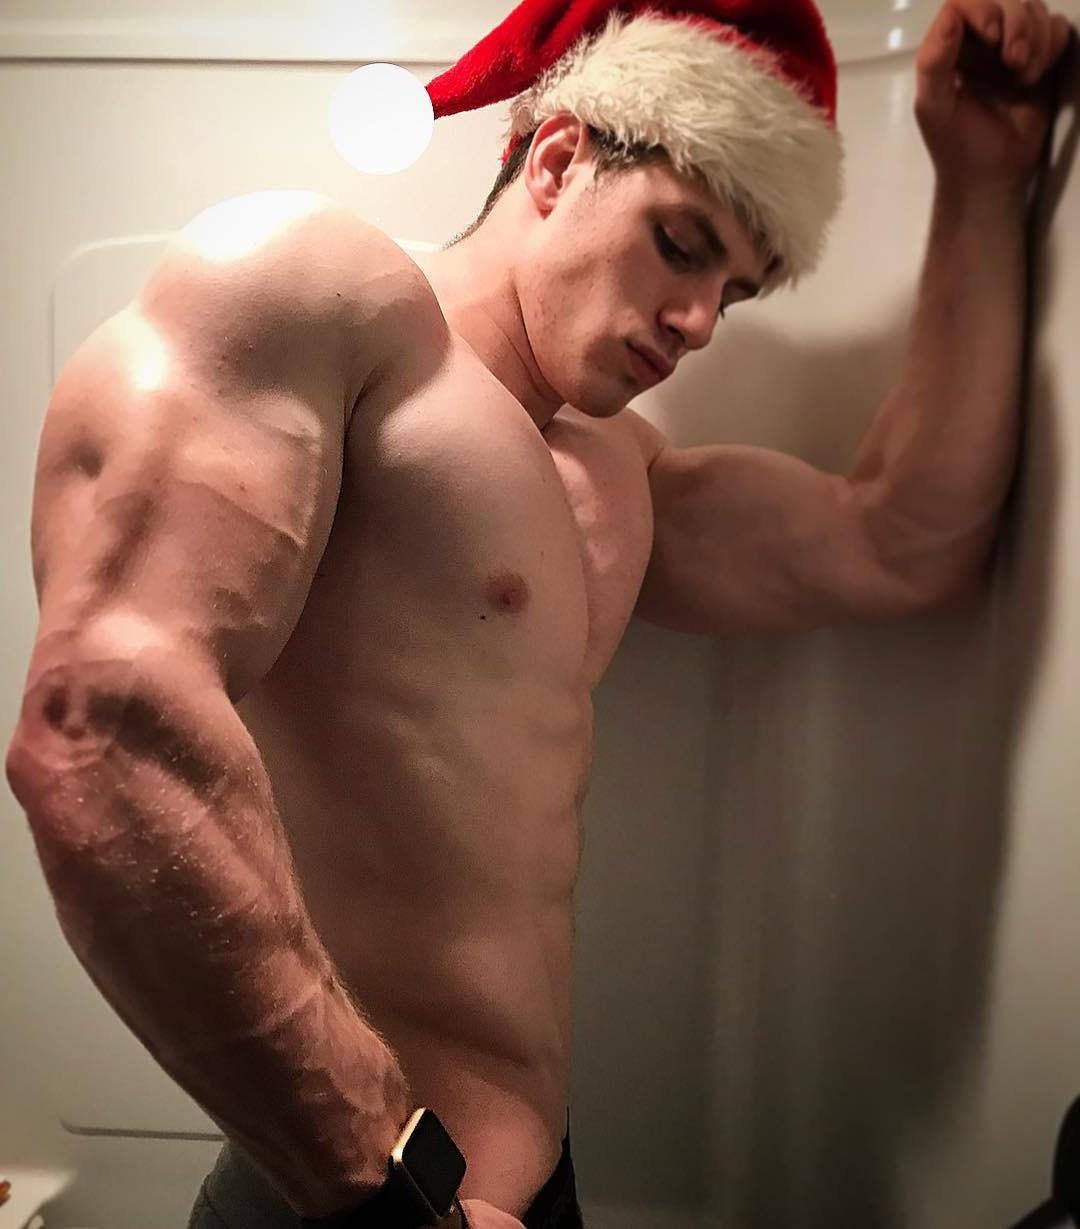 young-beefy-bro-shirtless-swole-muscle-body-santa-claus-biceps-hunk